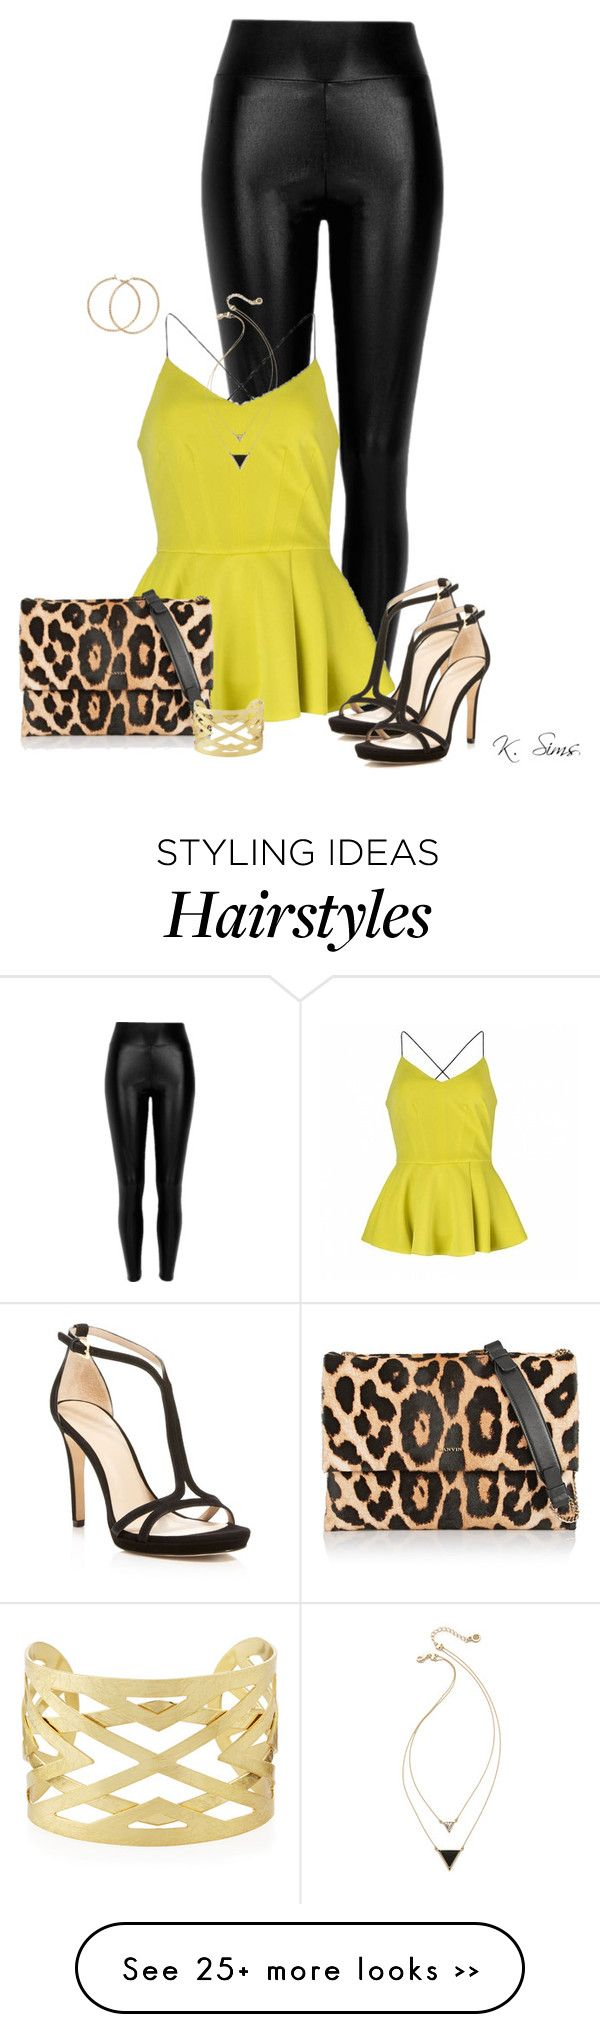 """Untitled #6151"" by ksims-1 on Polyvore"